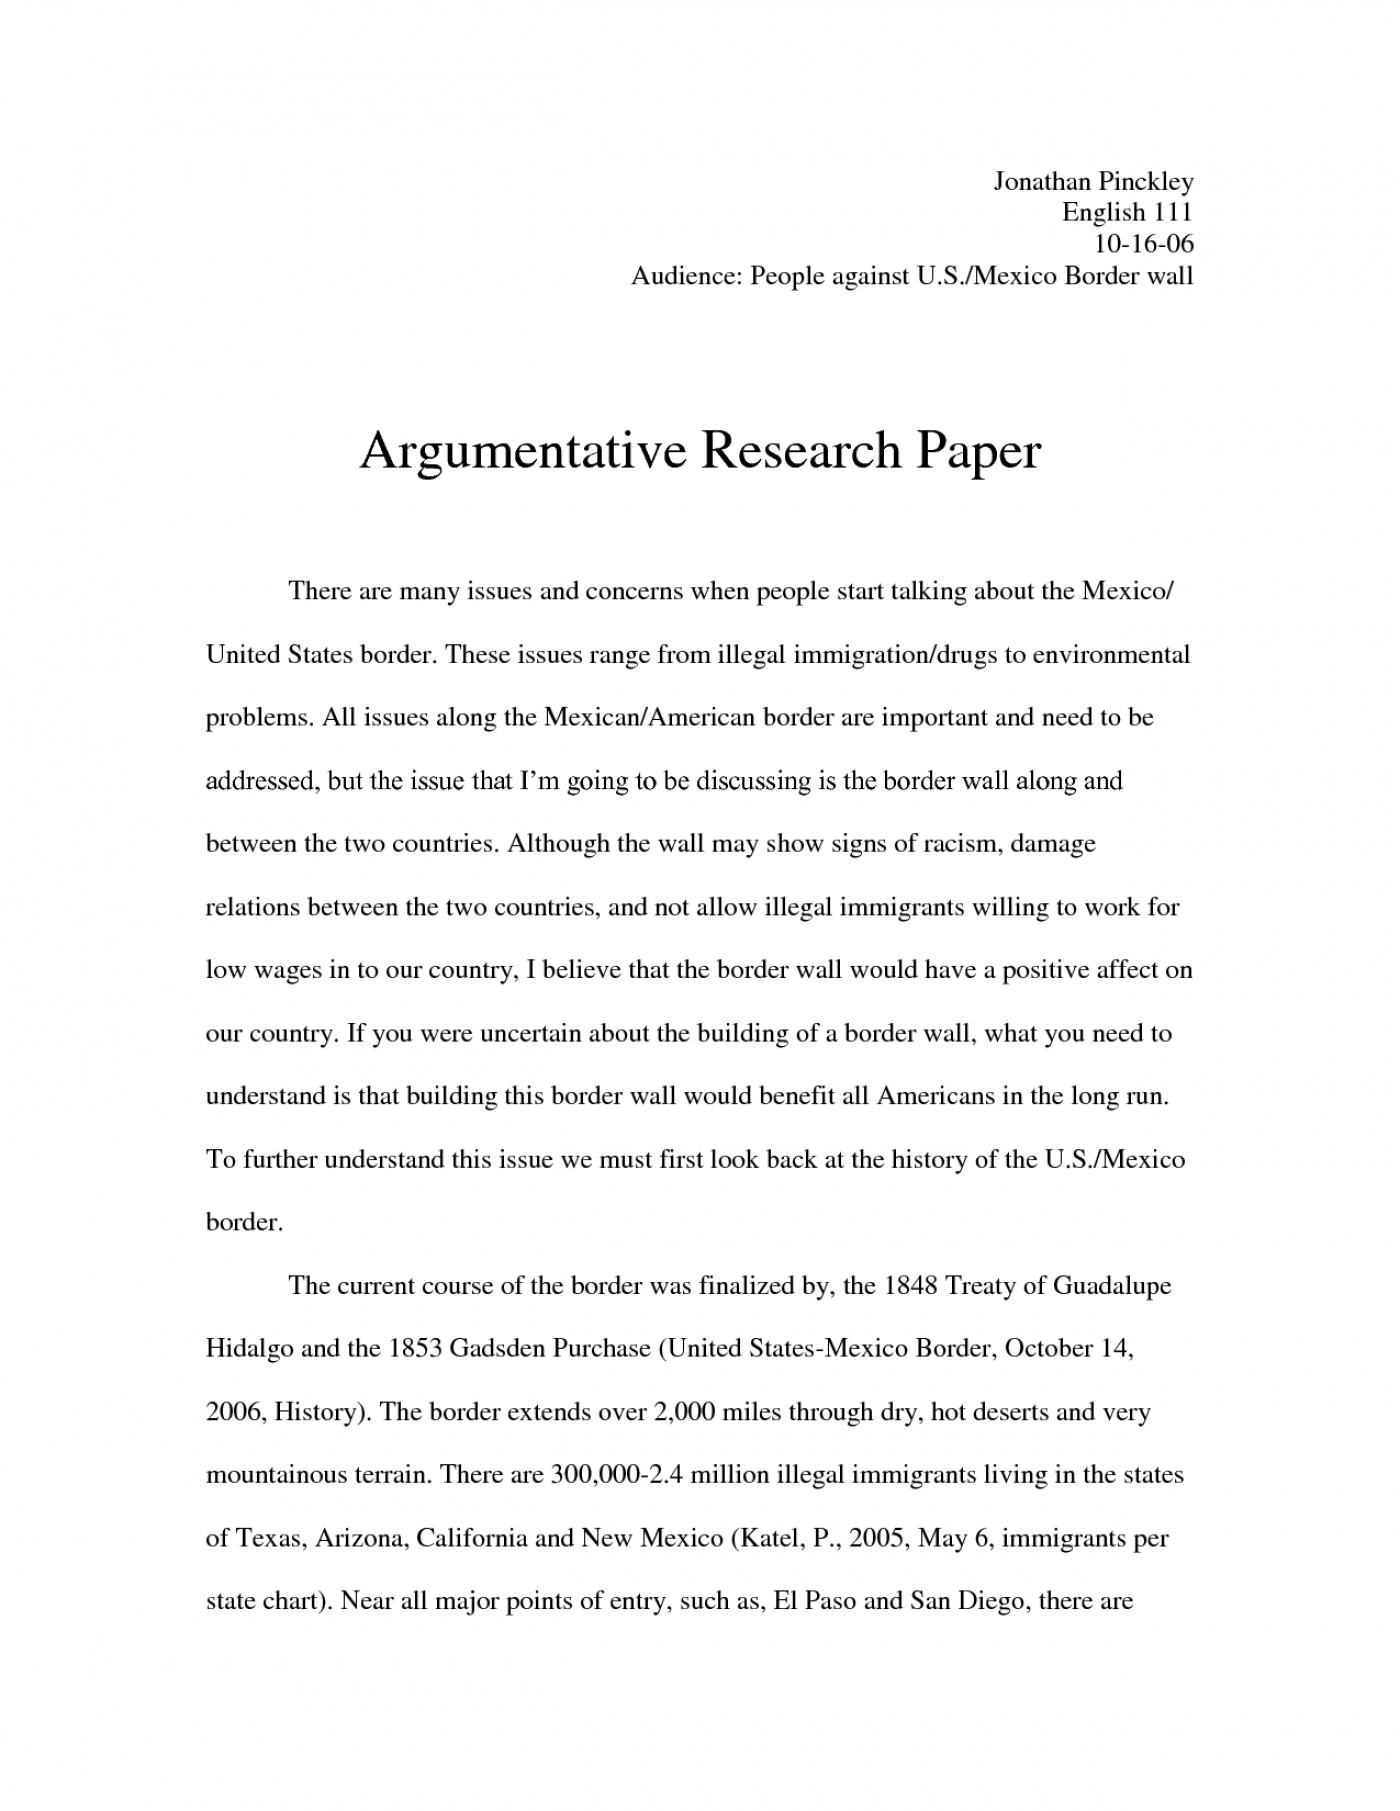 014 Topics For Argumentative Research Paper Uncategorized Debate20y Thesis High School Sentence Starters Outline Worksheet Wonderful Interesting Medical 1400